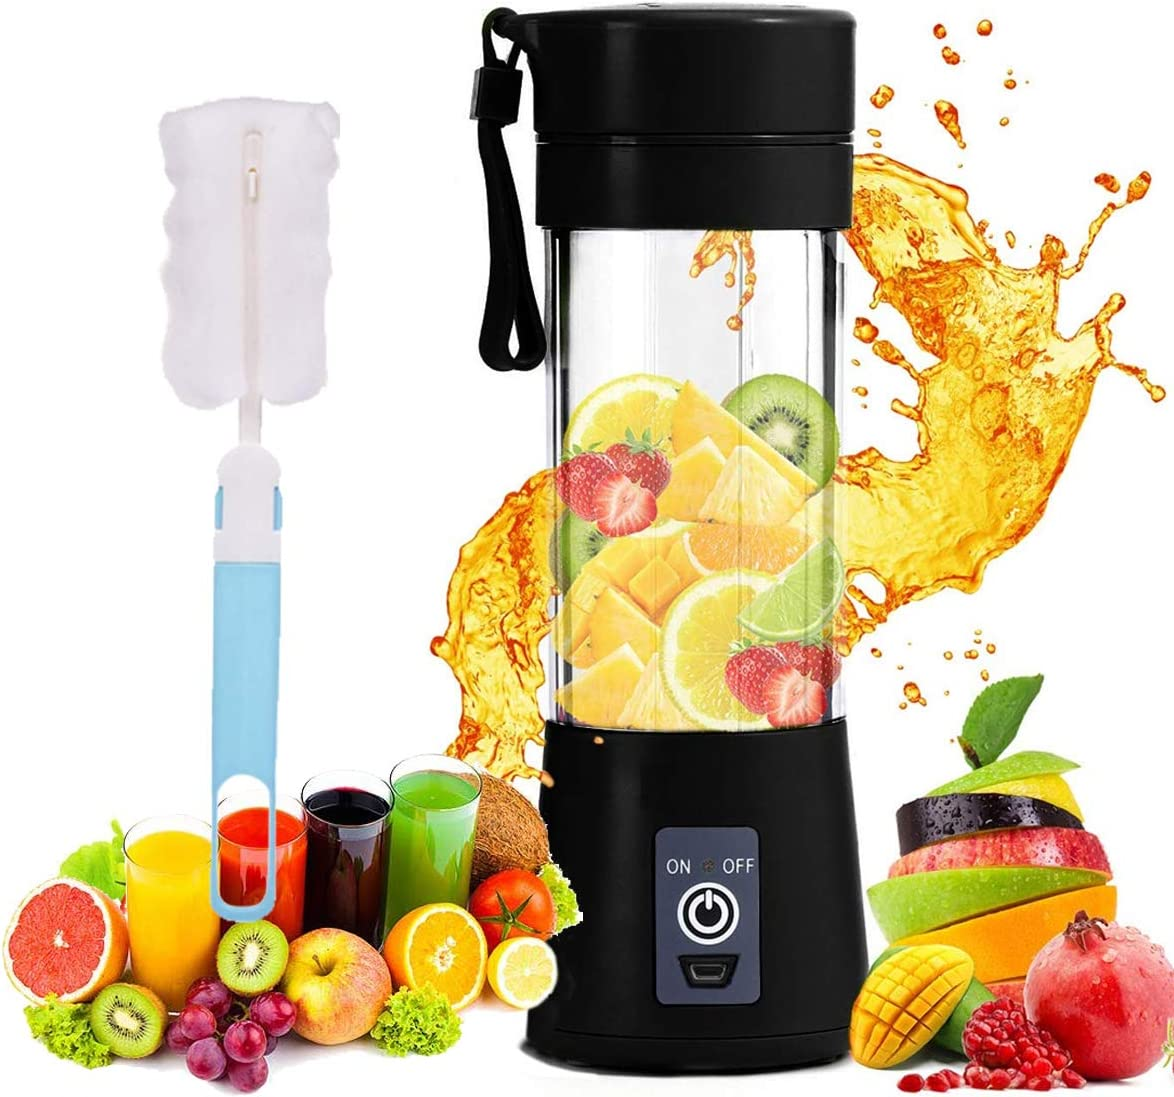 Portable Personal Blender, Household Juicer fruit shake Mixer -Six Blades, BPA Free 380ml Baby cooking machine with USB Charger Cable (black)